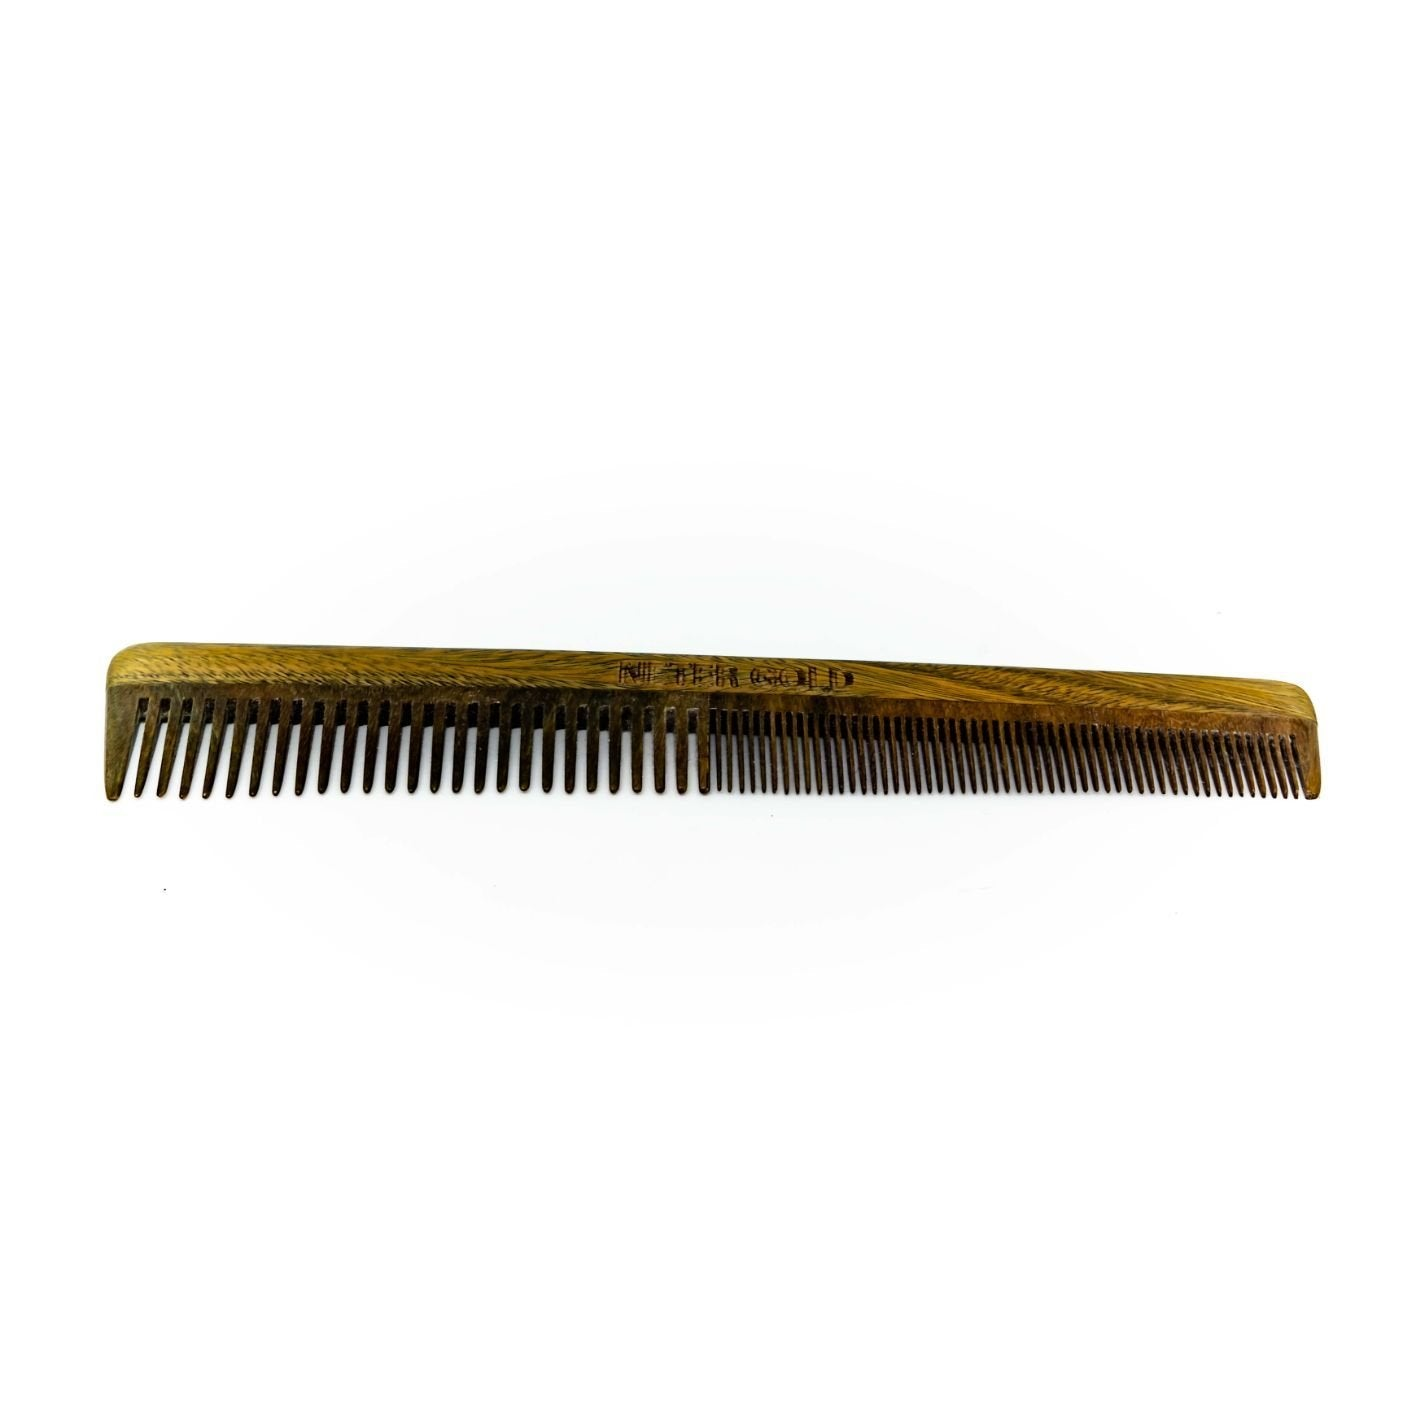 Dual Threat Wooden Combo Comb - Neter Gold - NTRGLD - NETER GOLD - All natural body care products designed to increase your natural godly glow. - hair growth - eczema - dry skin